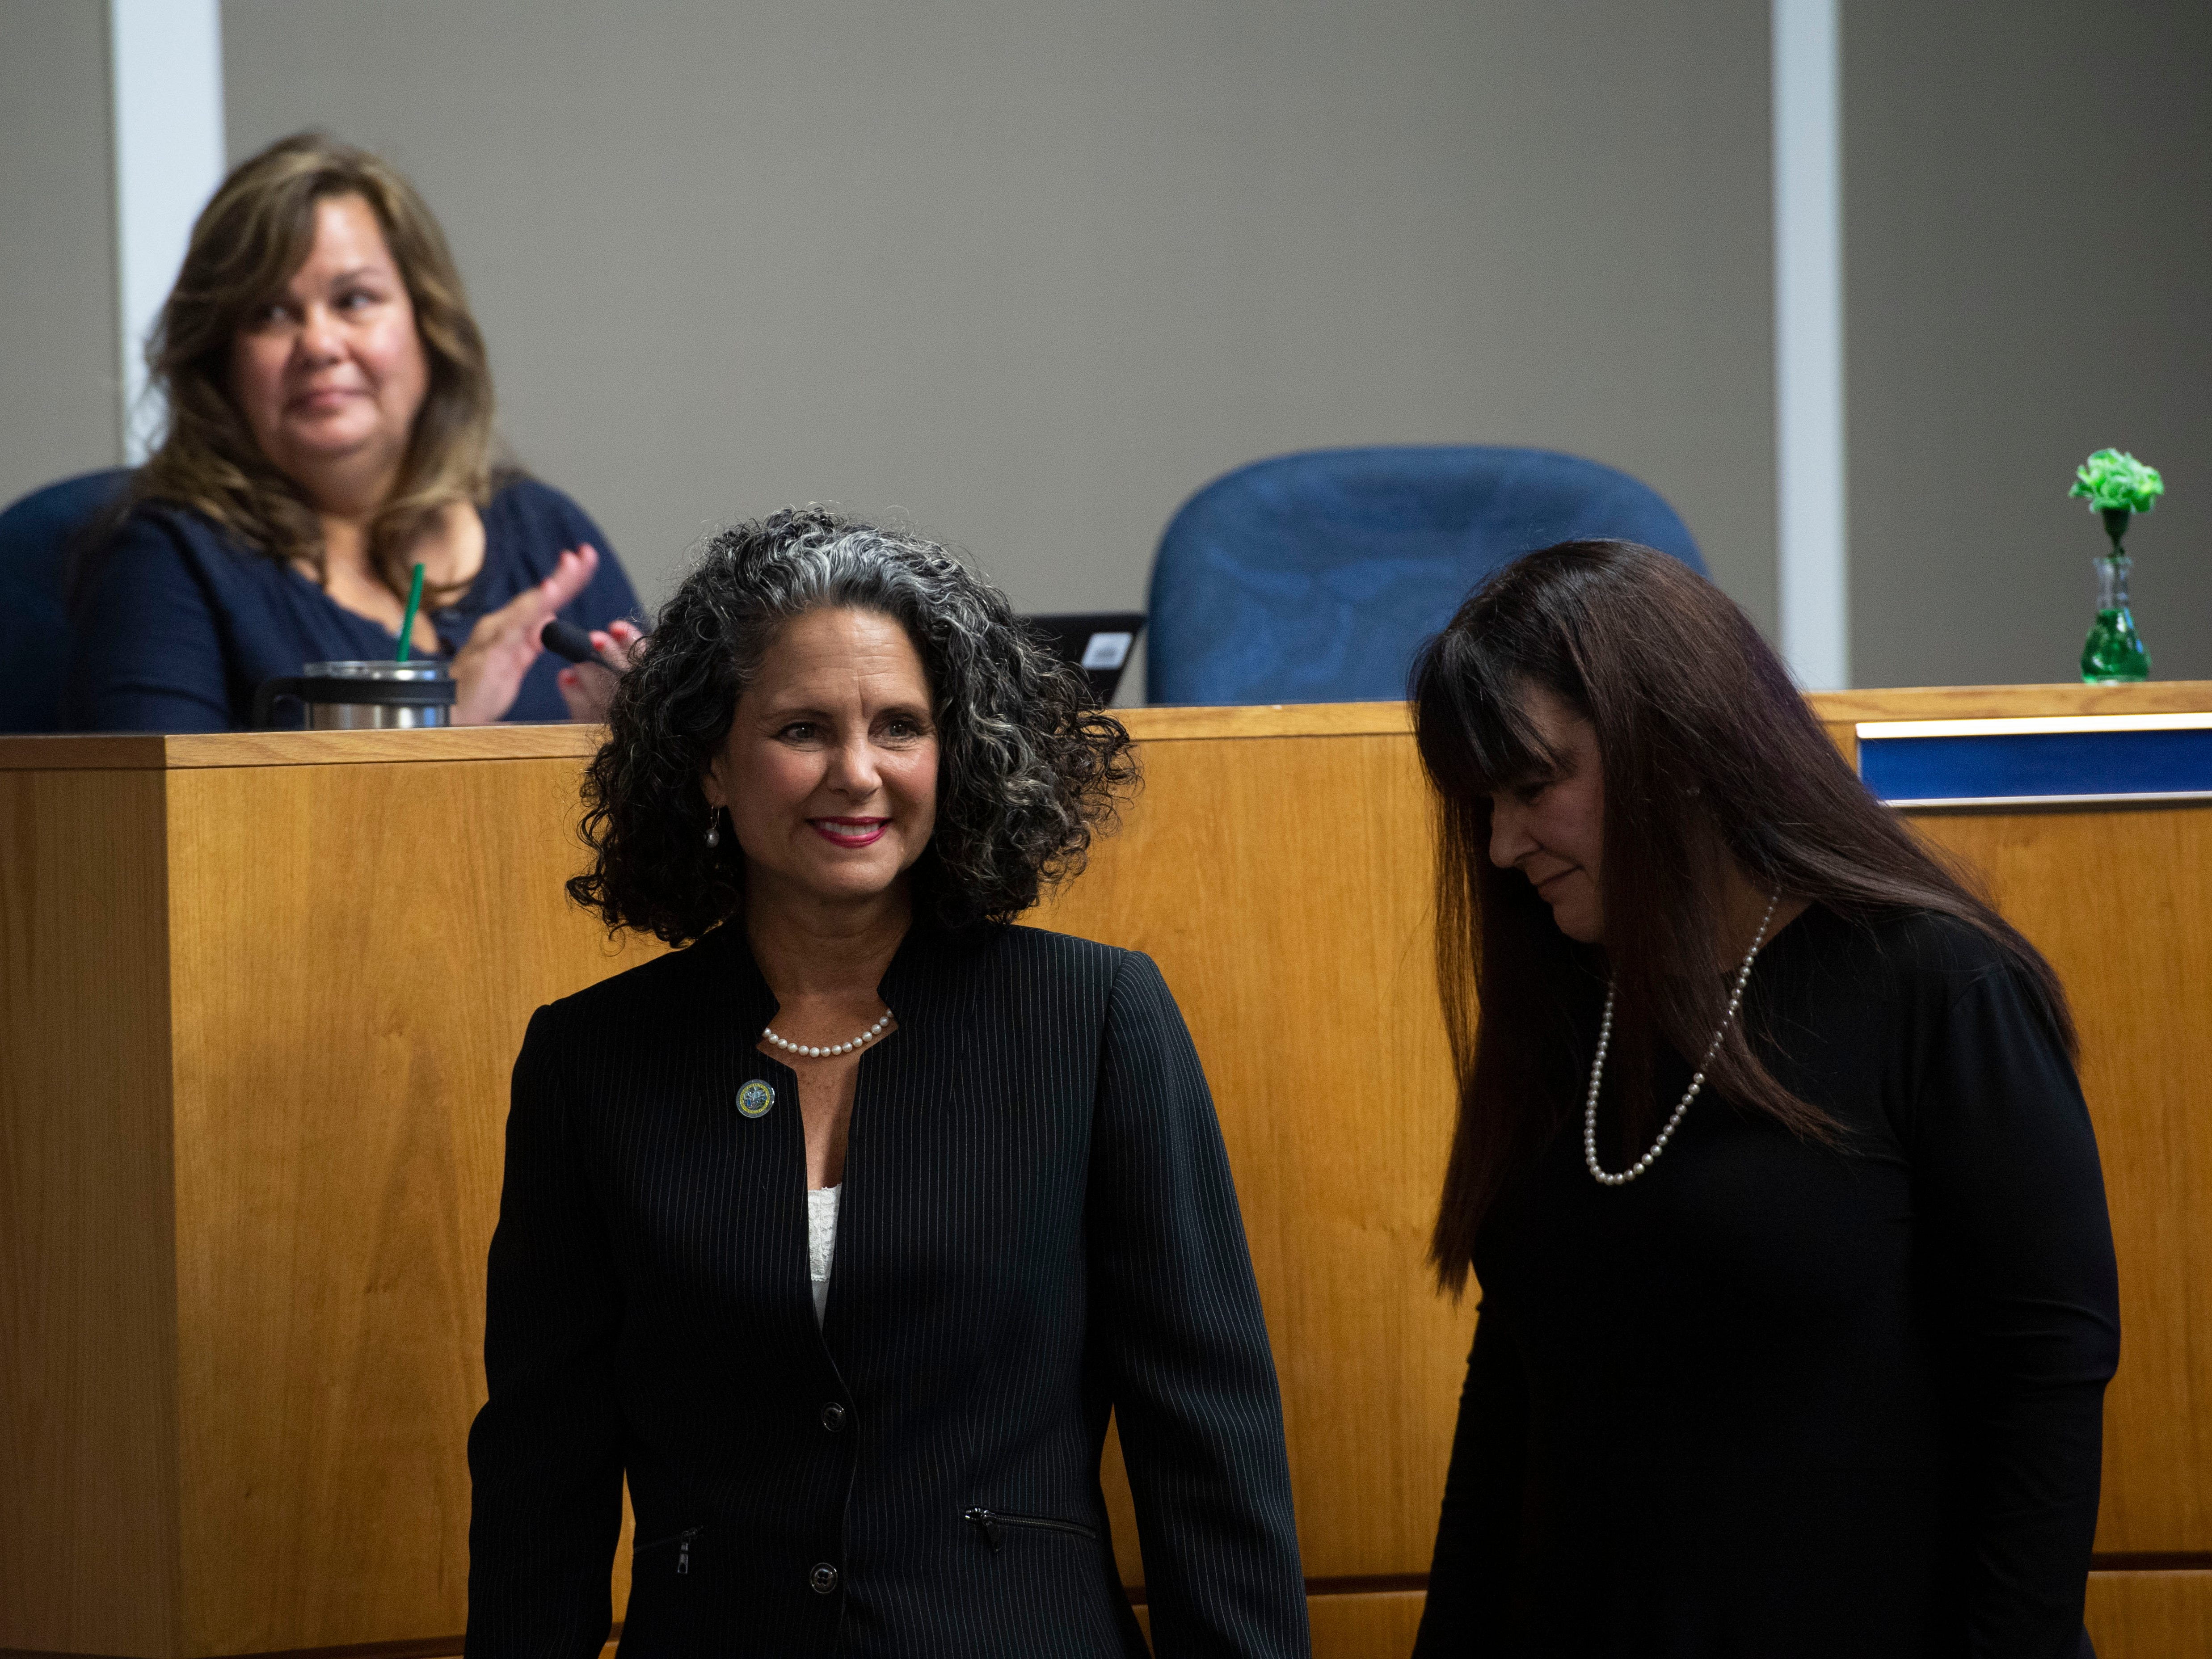 Jacqui Thurlow-Lippisch, of Sewall's Point, and Drew Bartlett were among those taking on new roles on the South Florida Water Management District governing board at the district's monthly meeting March 14, 2019, at the district offices in West Palm Beach. Following the swearing in of Gov. Ron DeSantis' handpicked seven new board members, including Thurlow-Lippish, Bartlett was chosen as the water management district's new executive director, beginning April 1. Two open board seats remain.